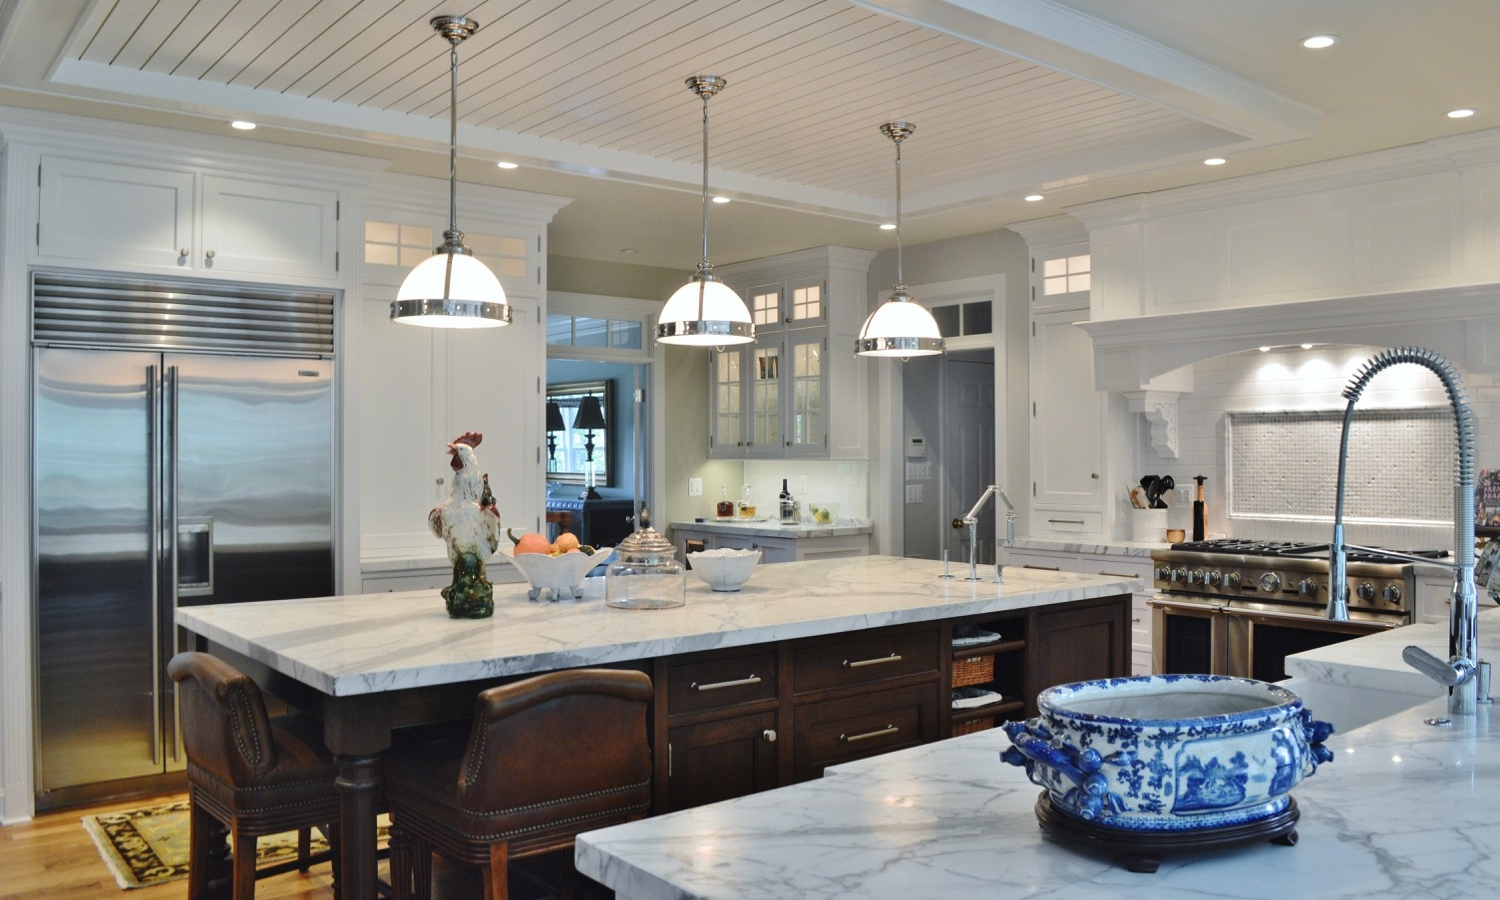 Southern Kitchen Design southern kitchen nautical style by gary mcbournie Southern Kitchens Showroom 2350 Duke Street Suite A Alexandria Va 22314 703 548 4459